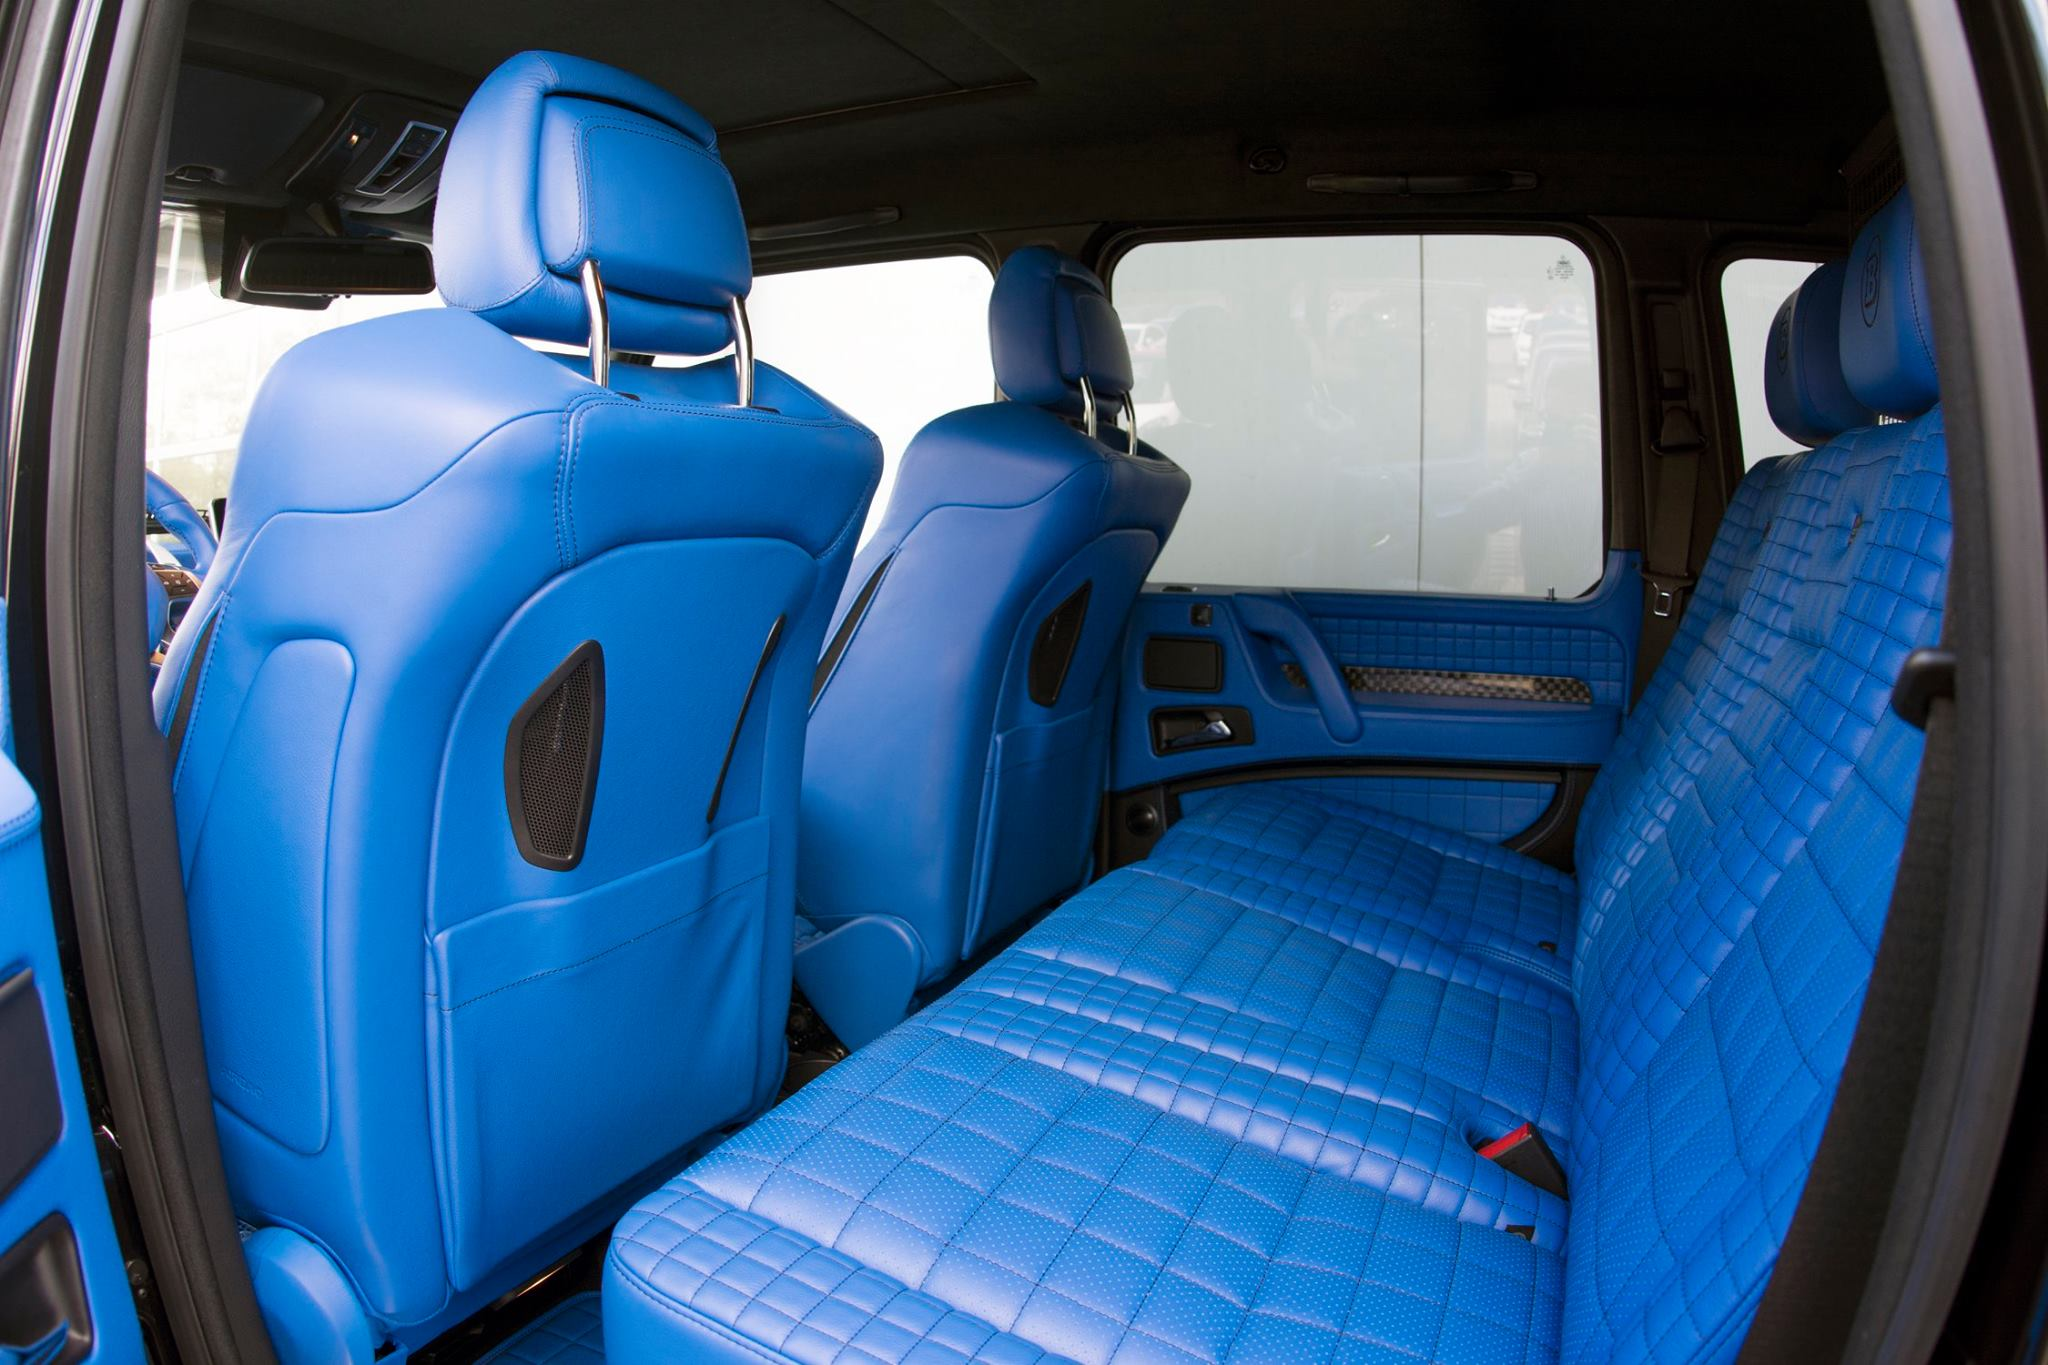 Brabus G500 4x4 Has A Blue Leather Interior That S Nifty